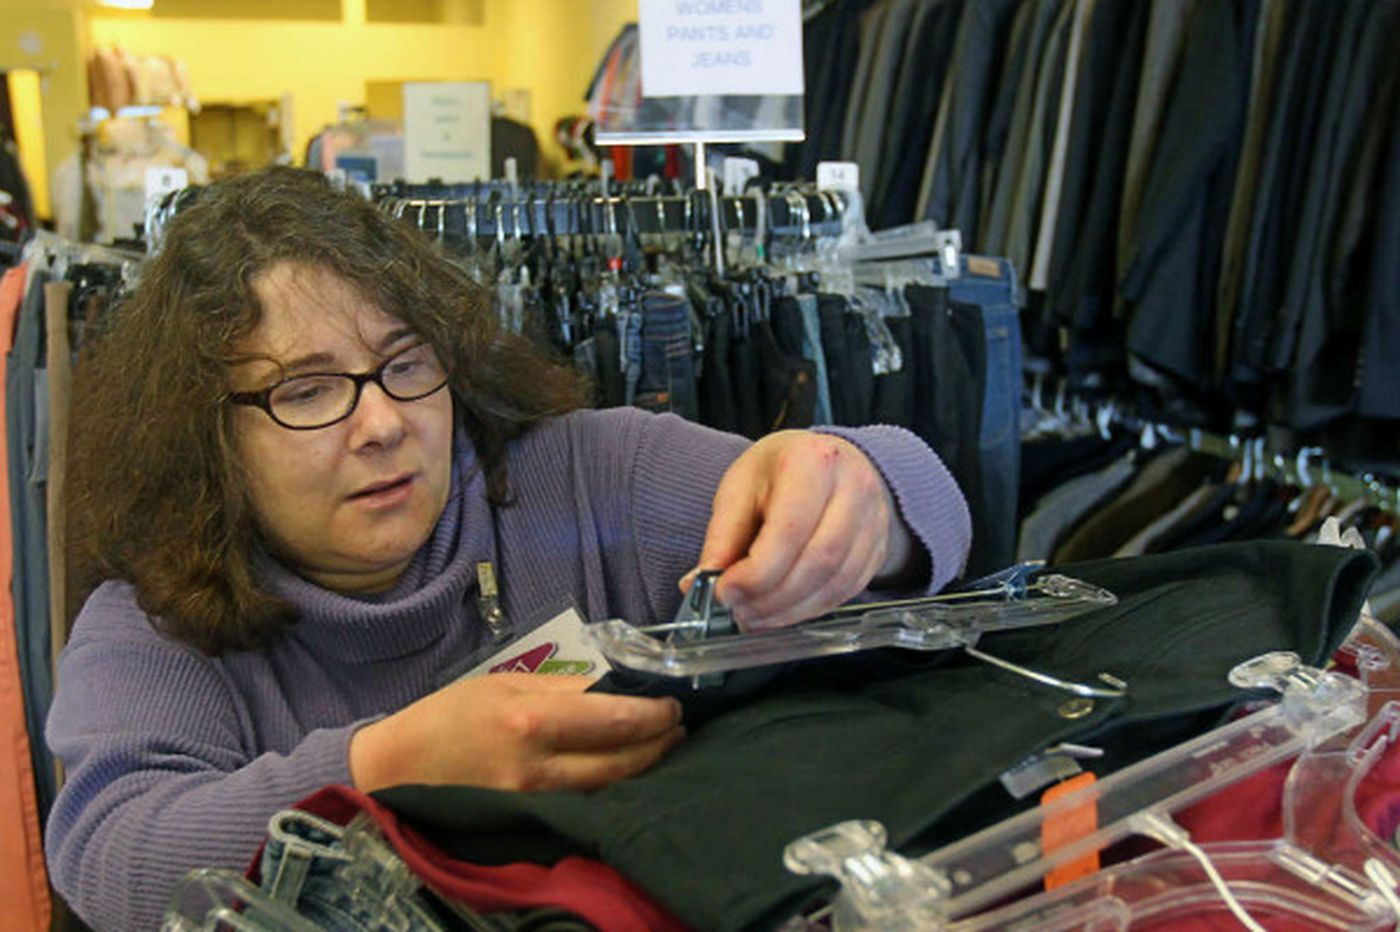 Special-needs adults learn clothing biz at NE Philly boutique